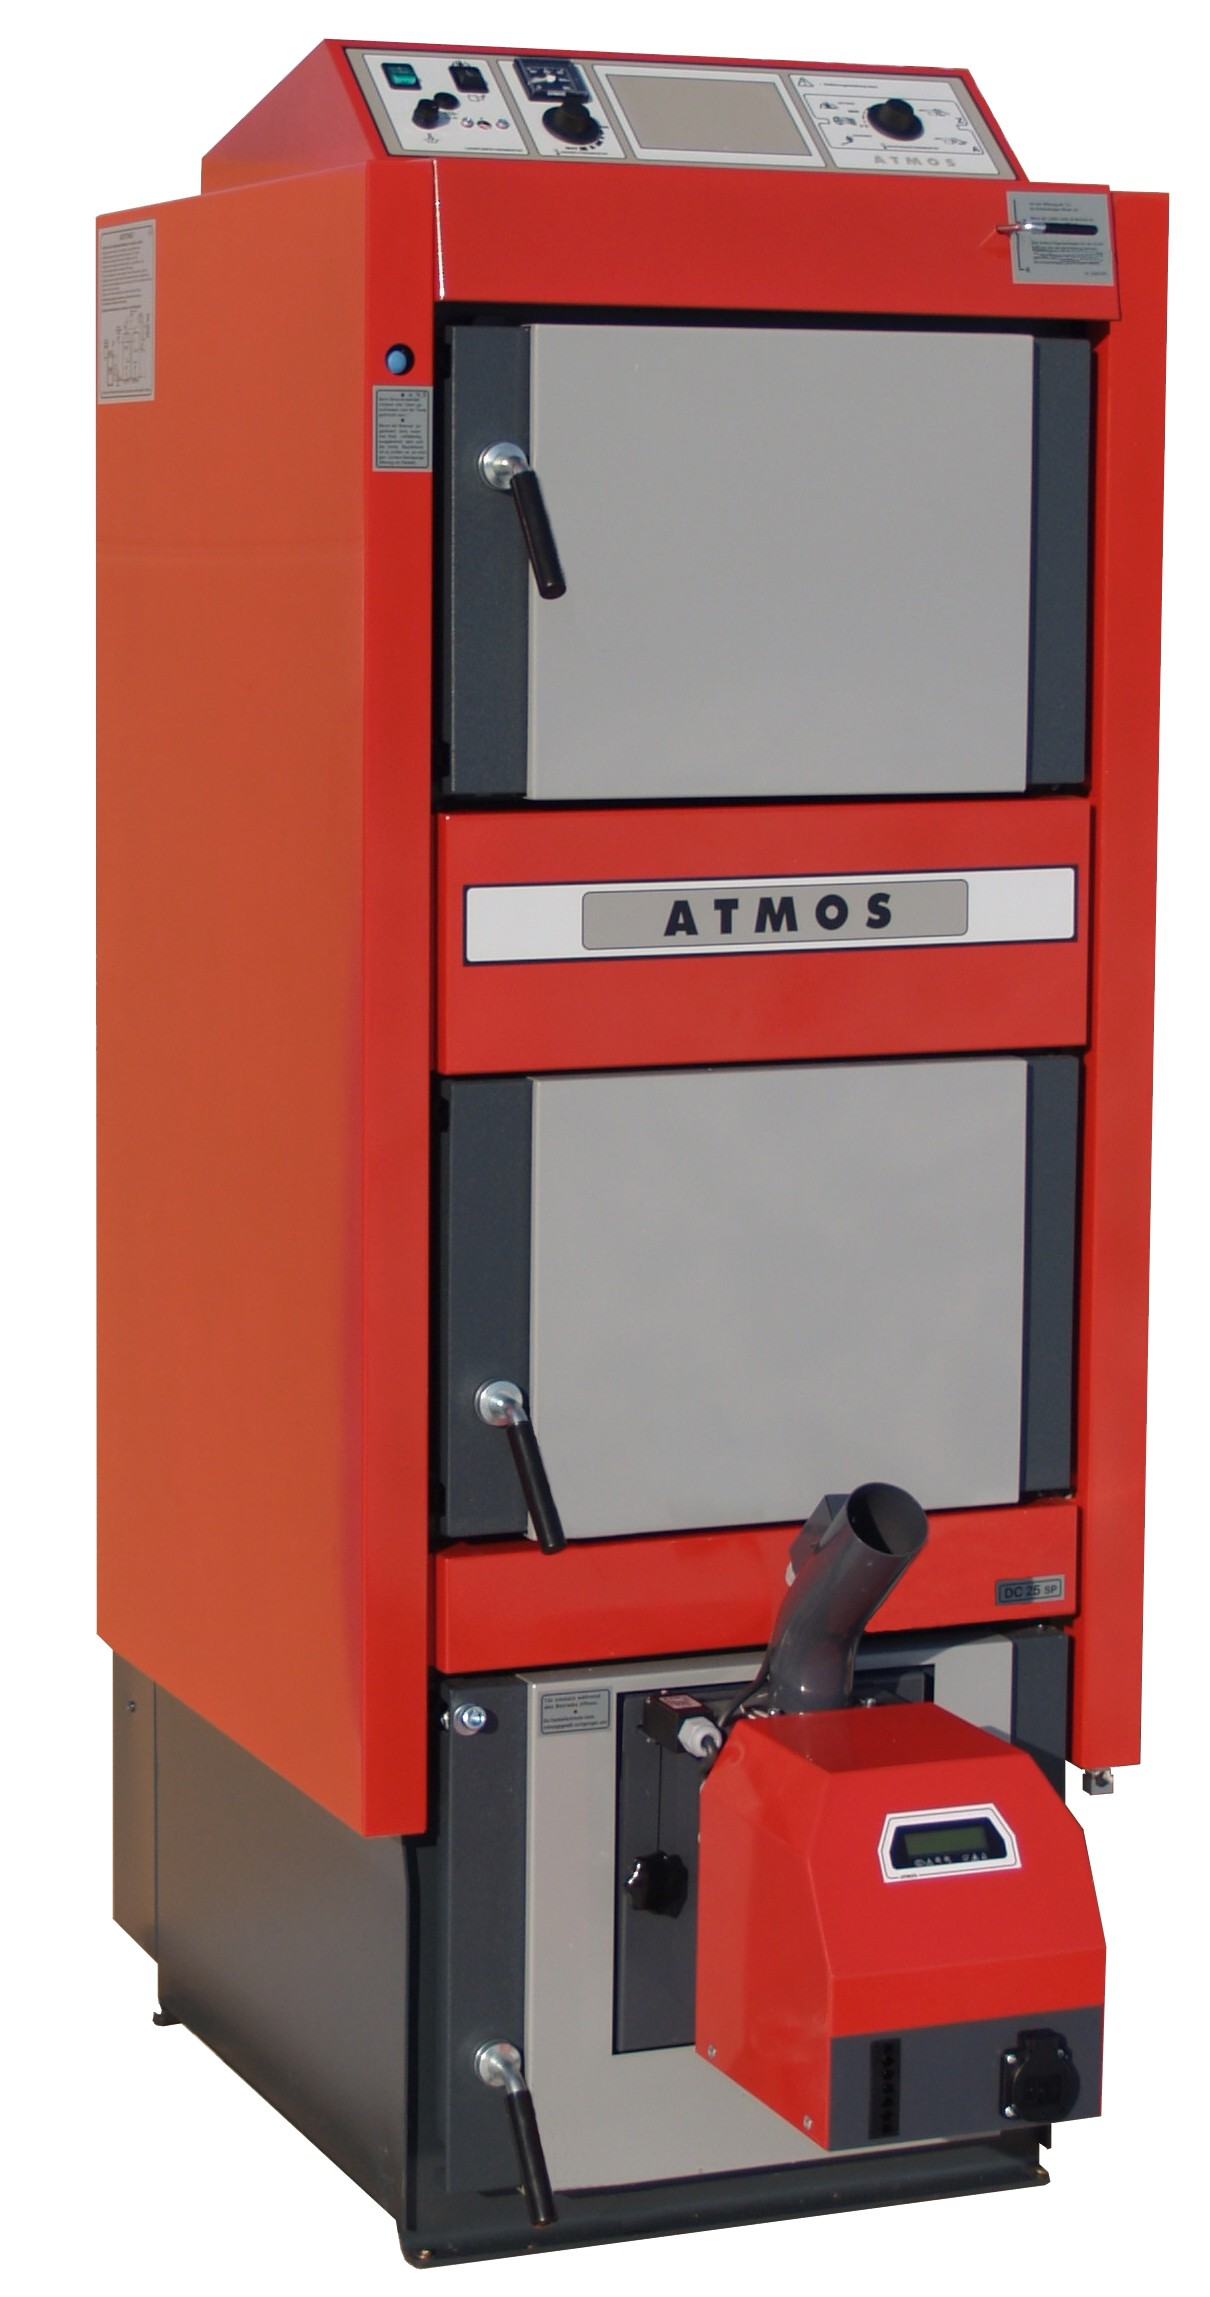 Atmos Dc25sp Wood Gasification Boiler